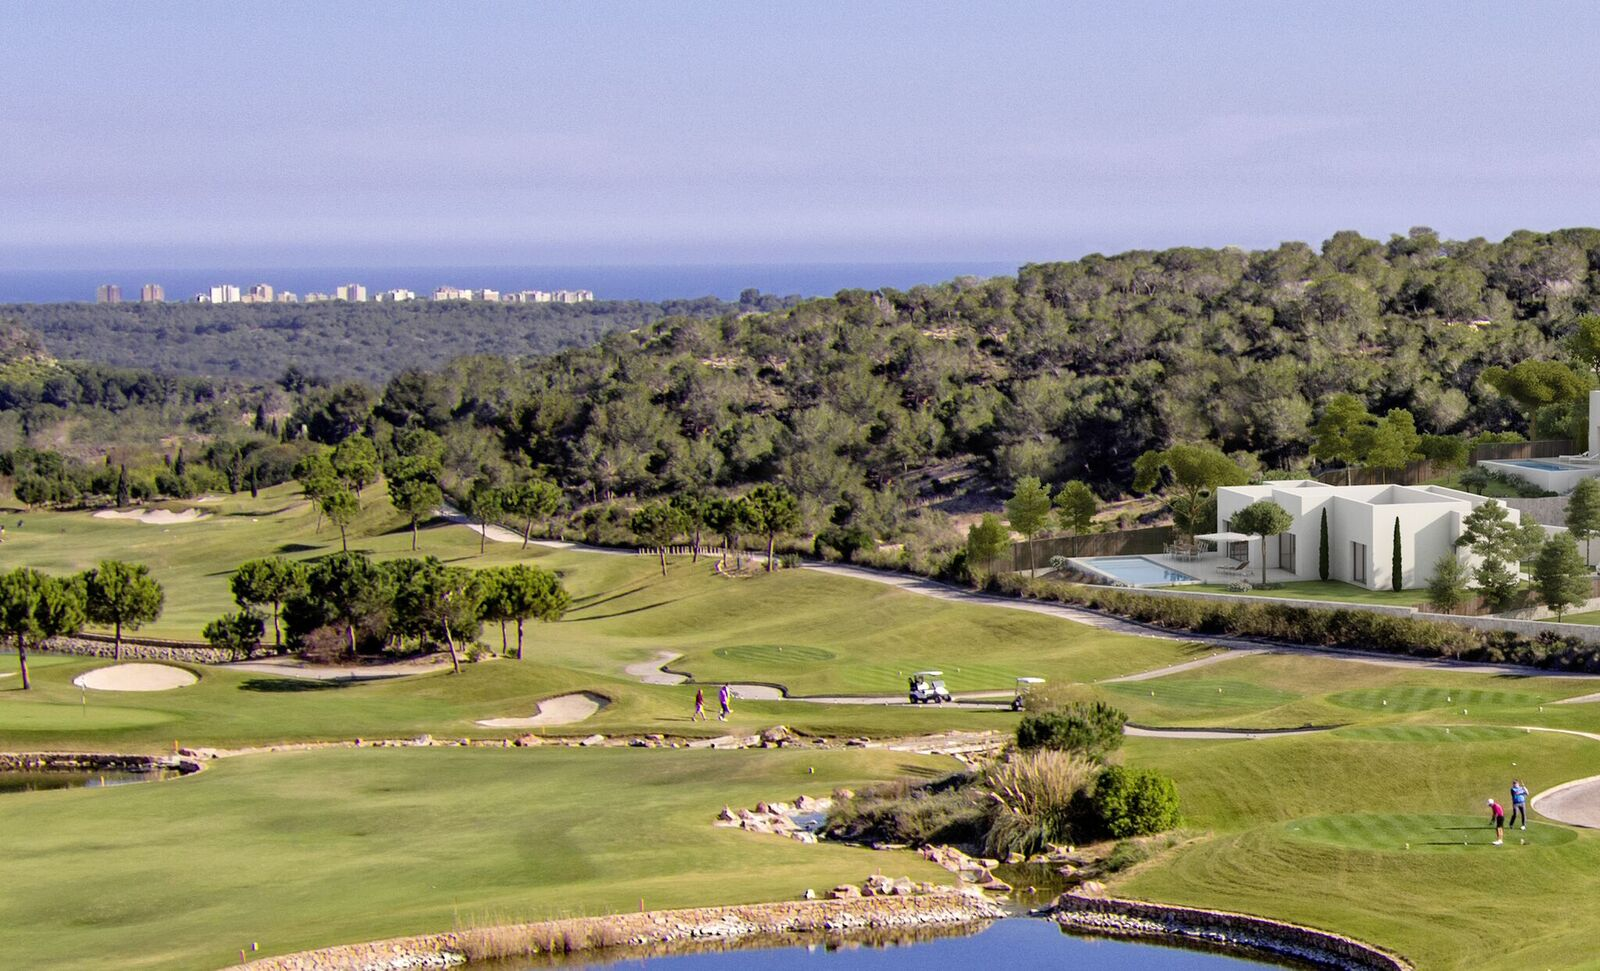 Las Colinas golf and country club